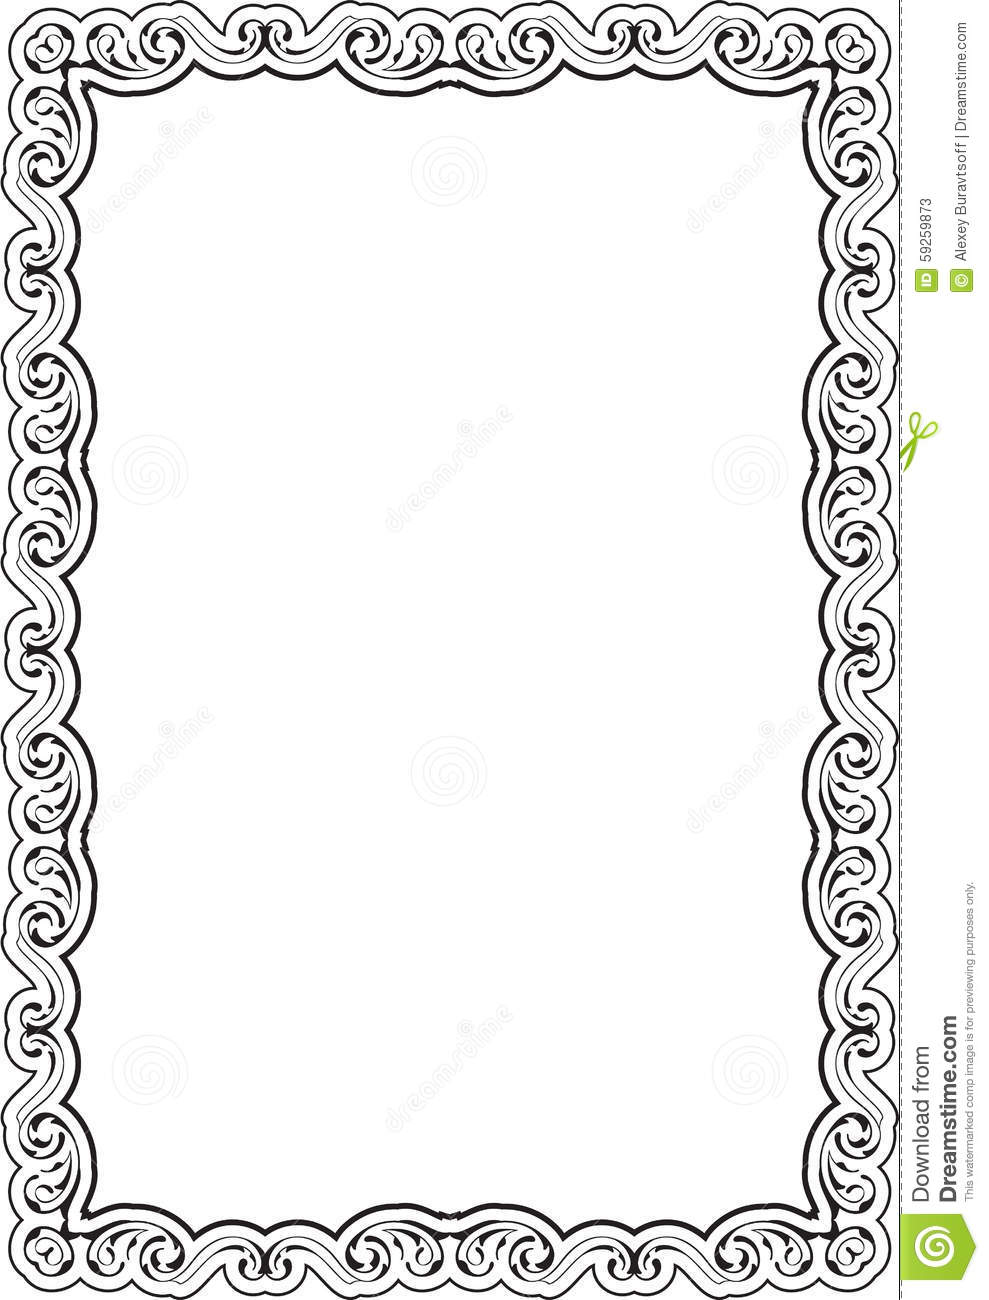 Art nice frame stock vector. Illustration of illustration - 59259873